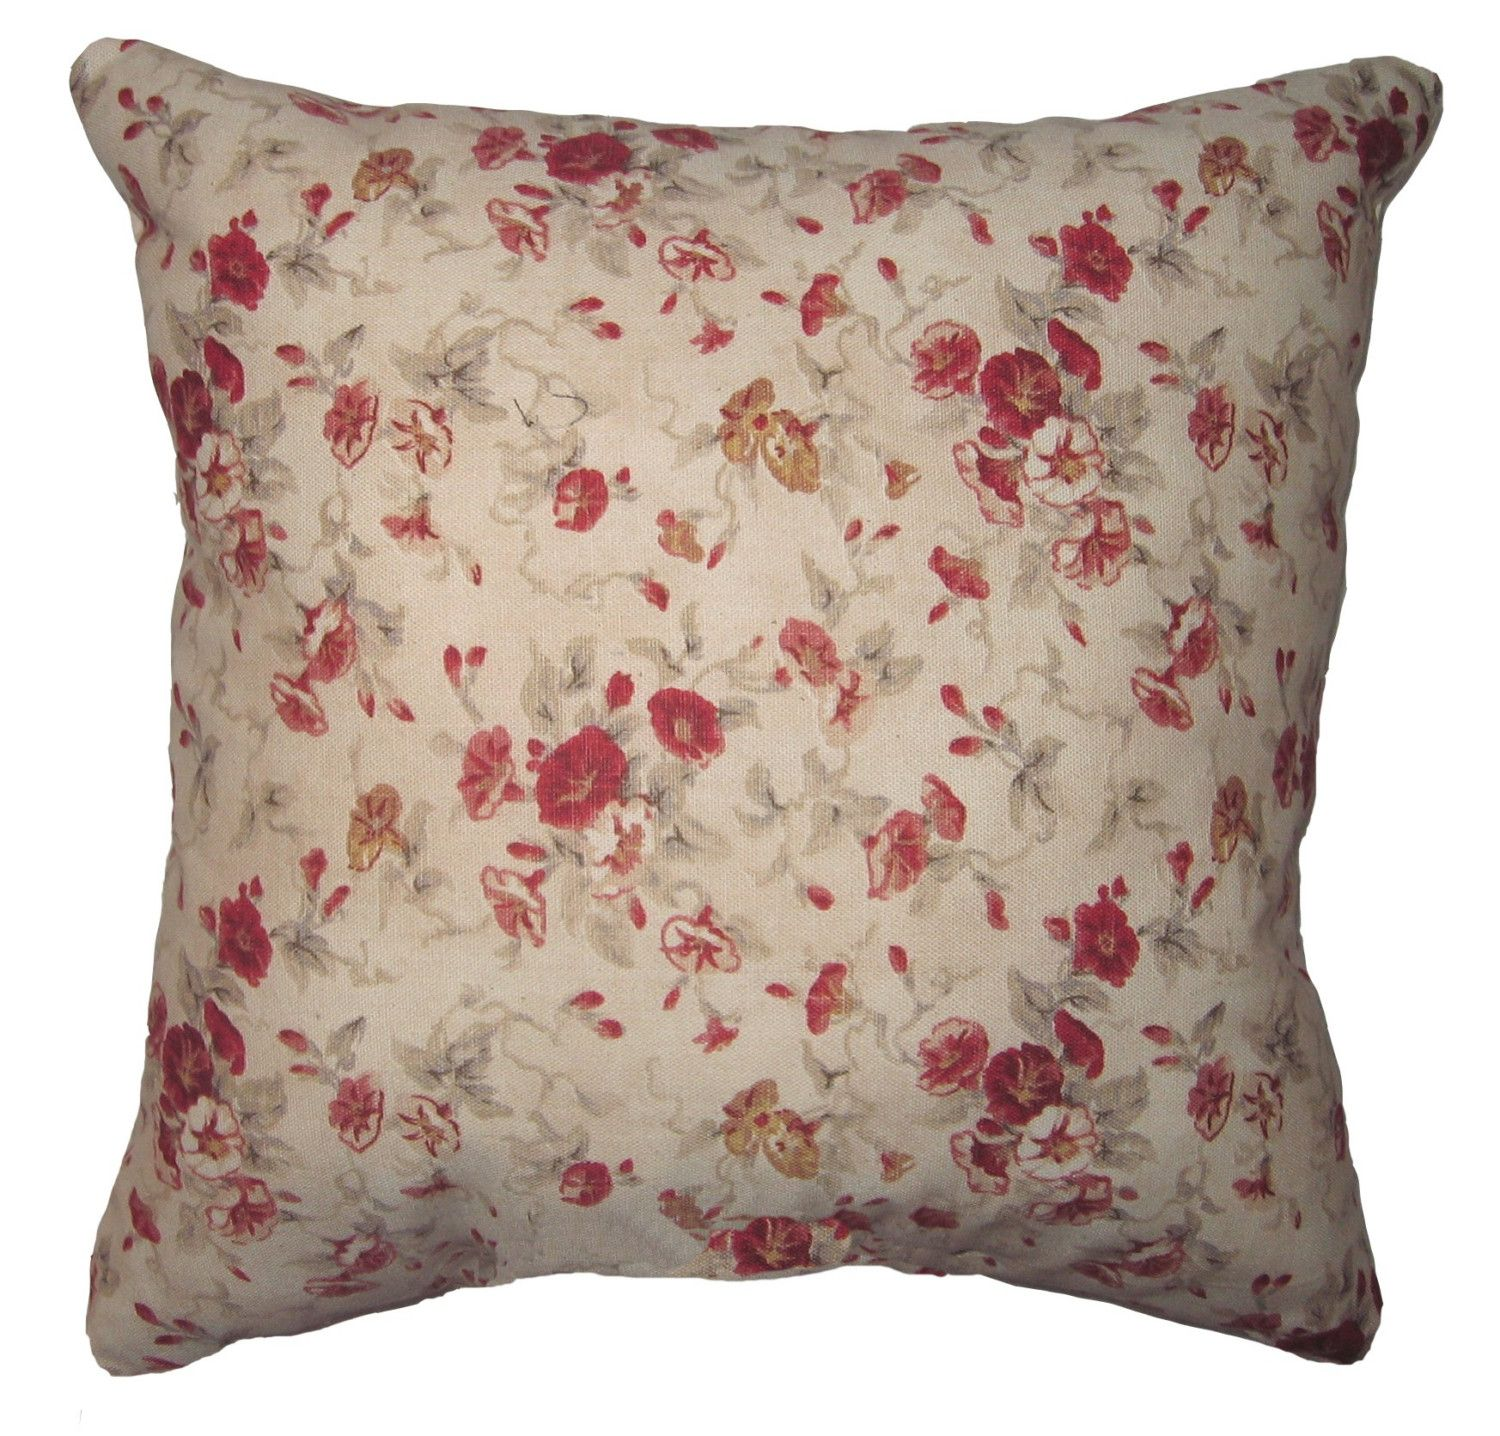 Waverly Decorative Throw Pillows : Floral Throw Pillow - Waverly Vintage Fairhaven Rose Lumbar or Square Decorative Pillow - FREE ...